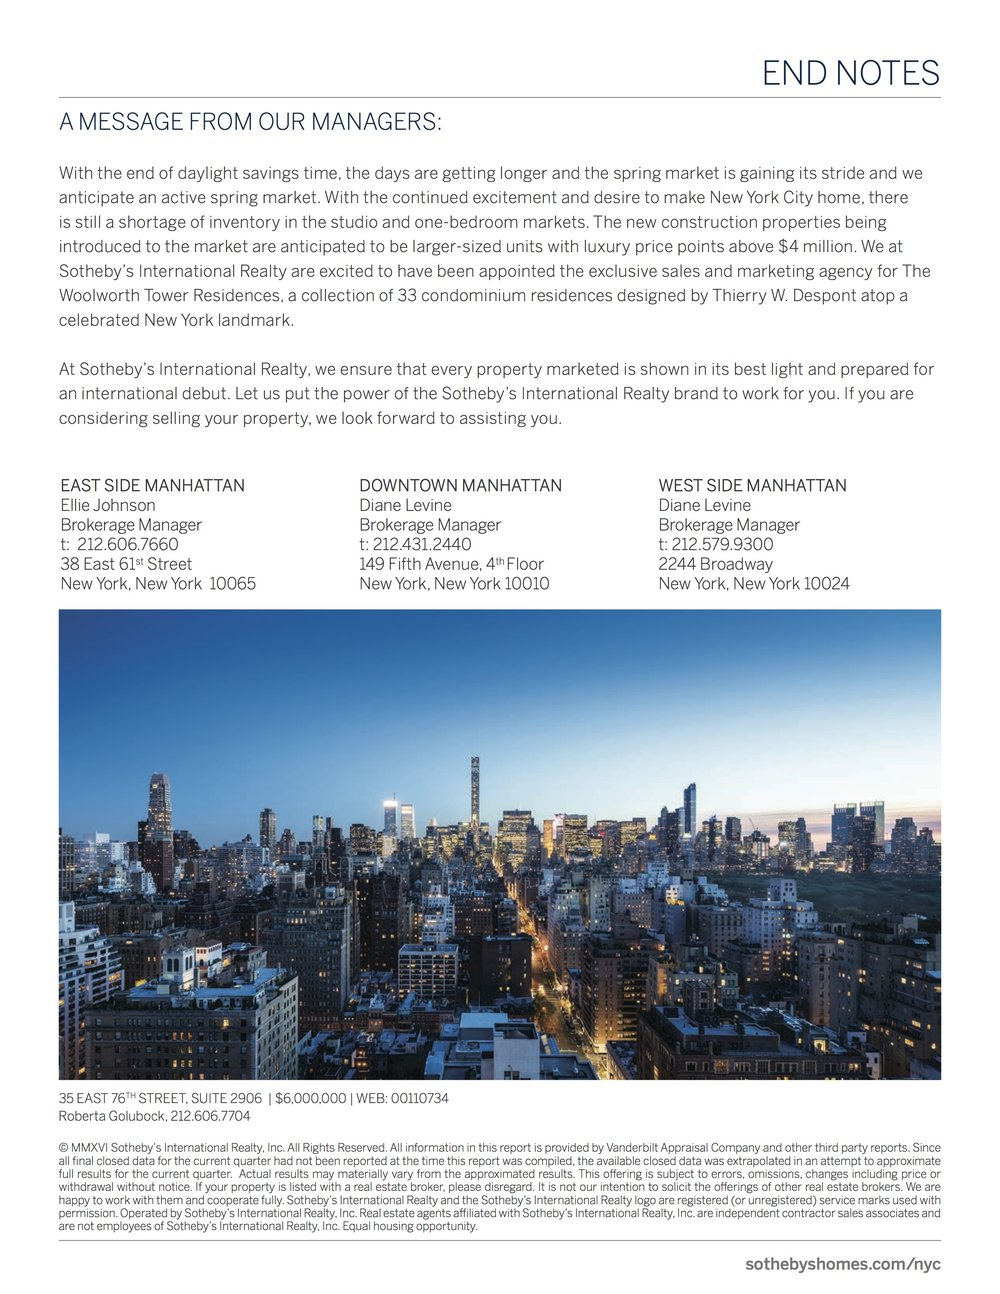 SothebysInternationalRealty_Manhattan_MarketReport_2016_Q1_10.jpg